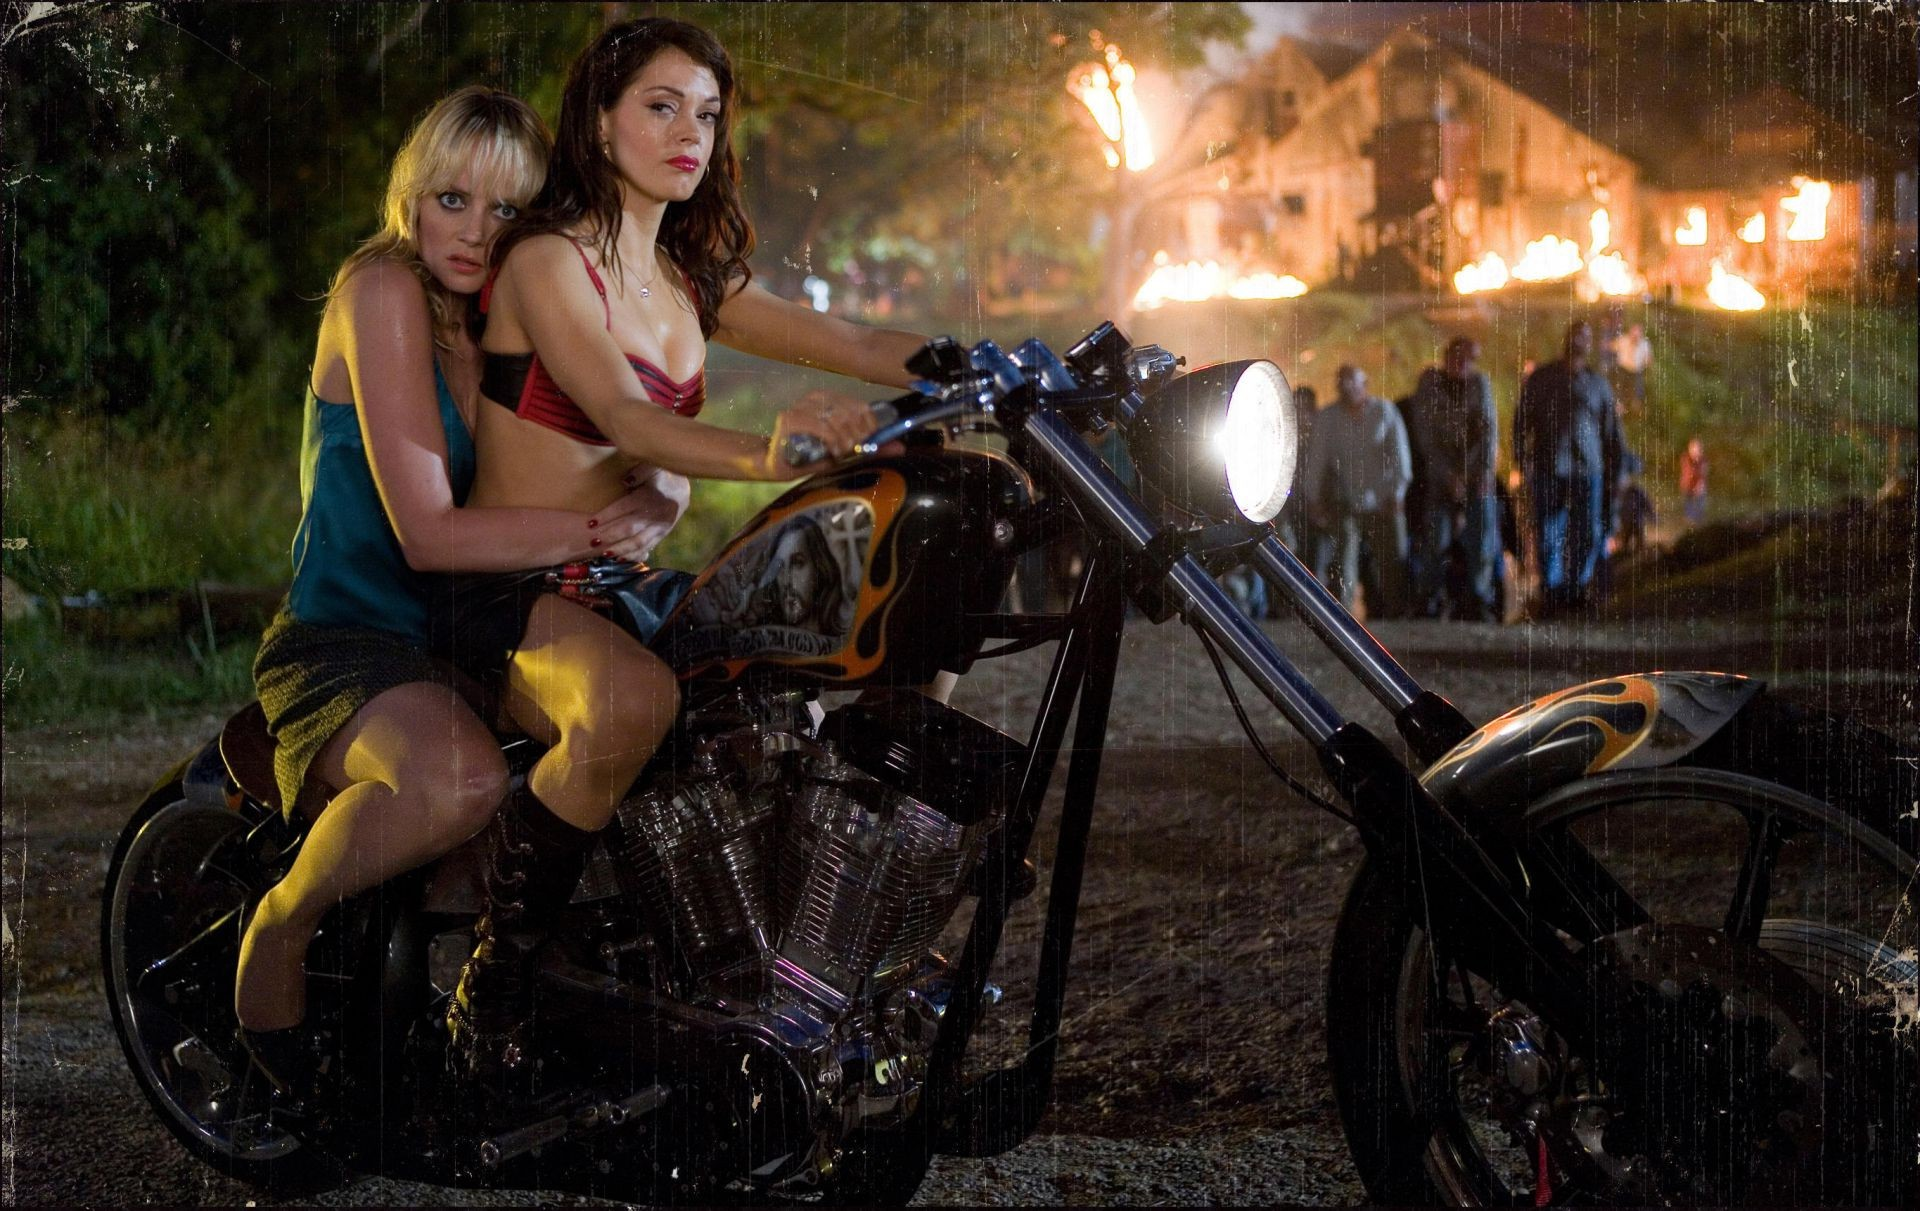 Grindhouse planet terror rose McGowan Marley Shelton